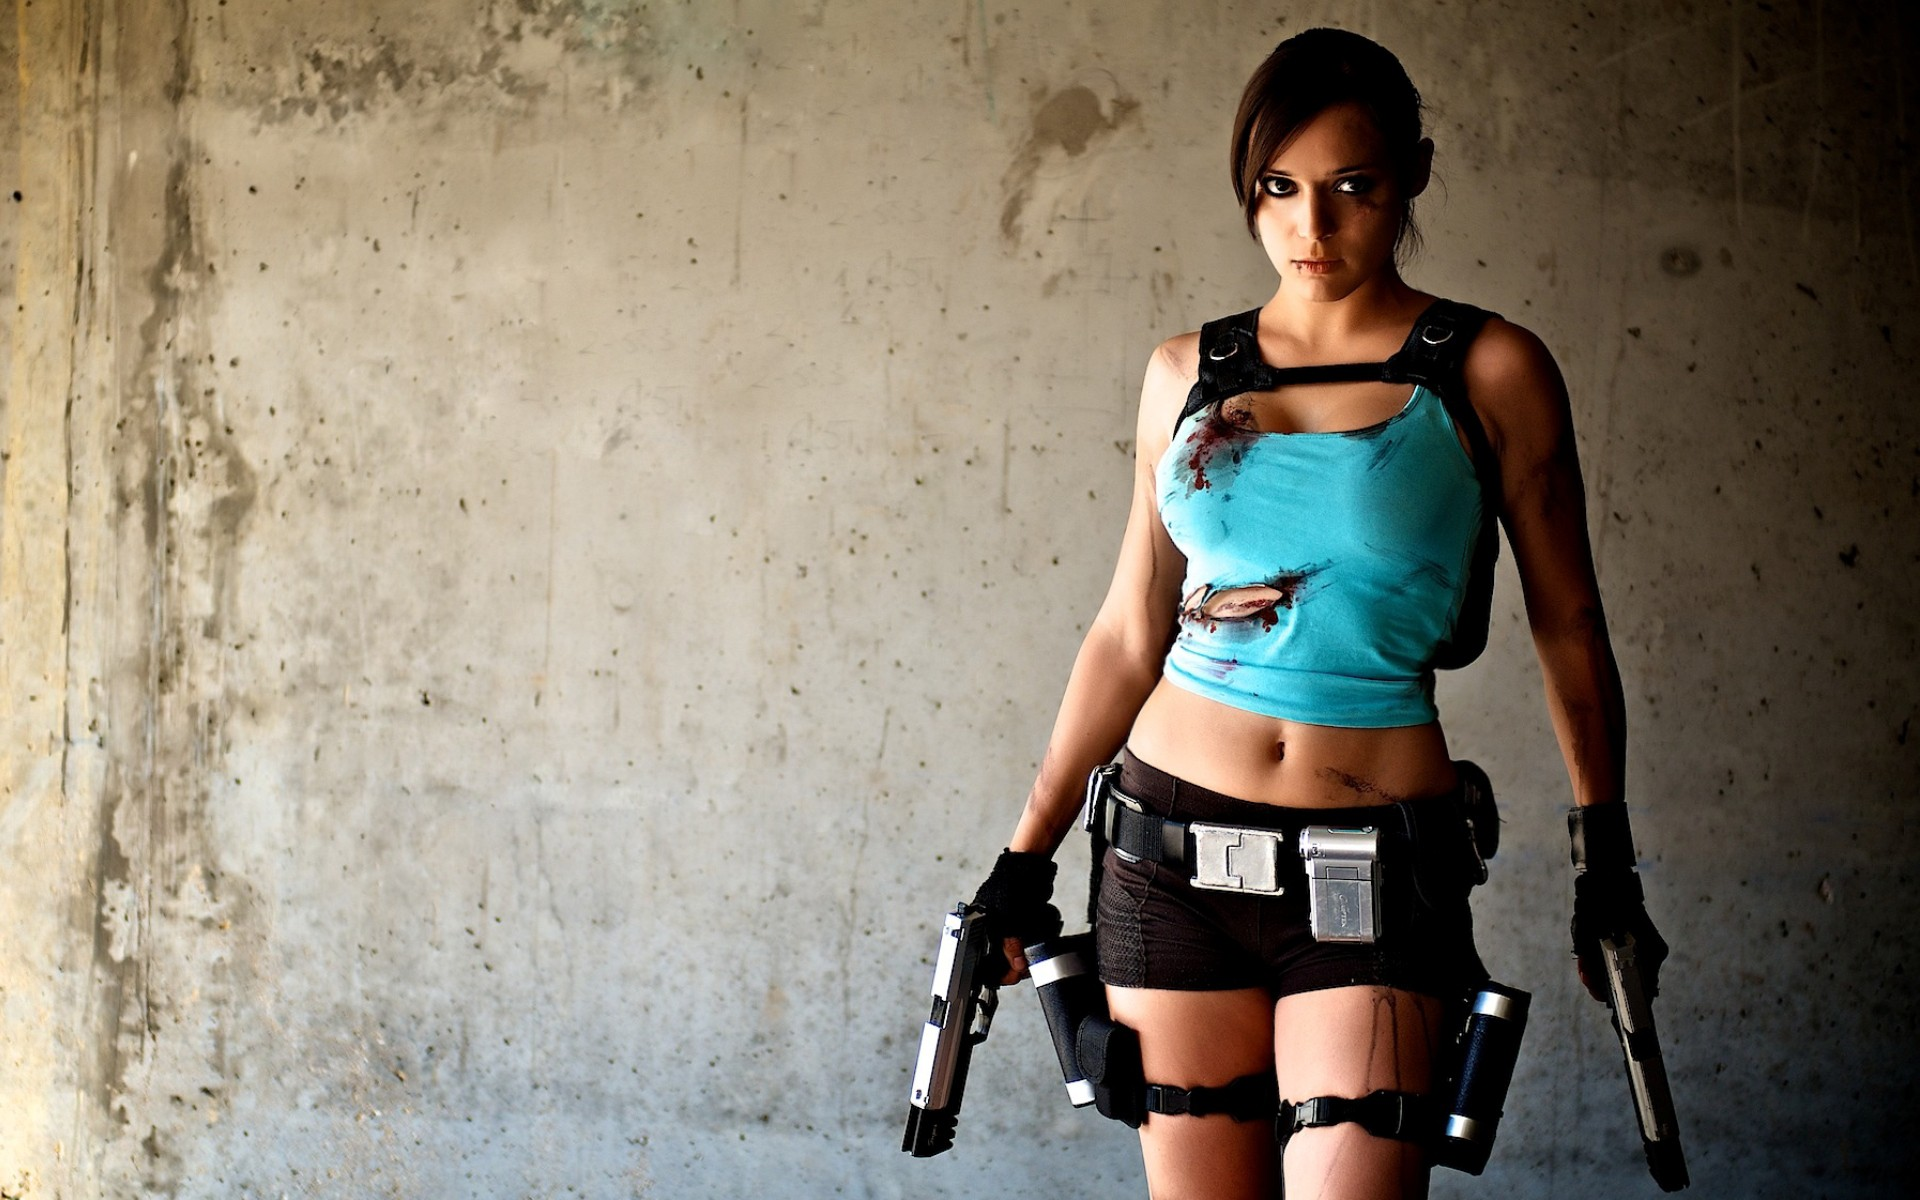 Lara croft awesome hentai hentay movies